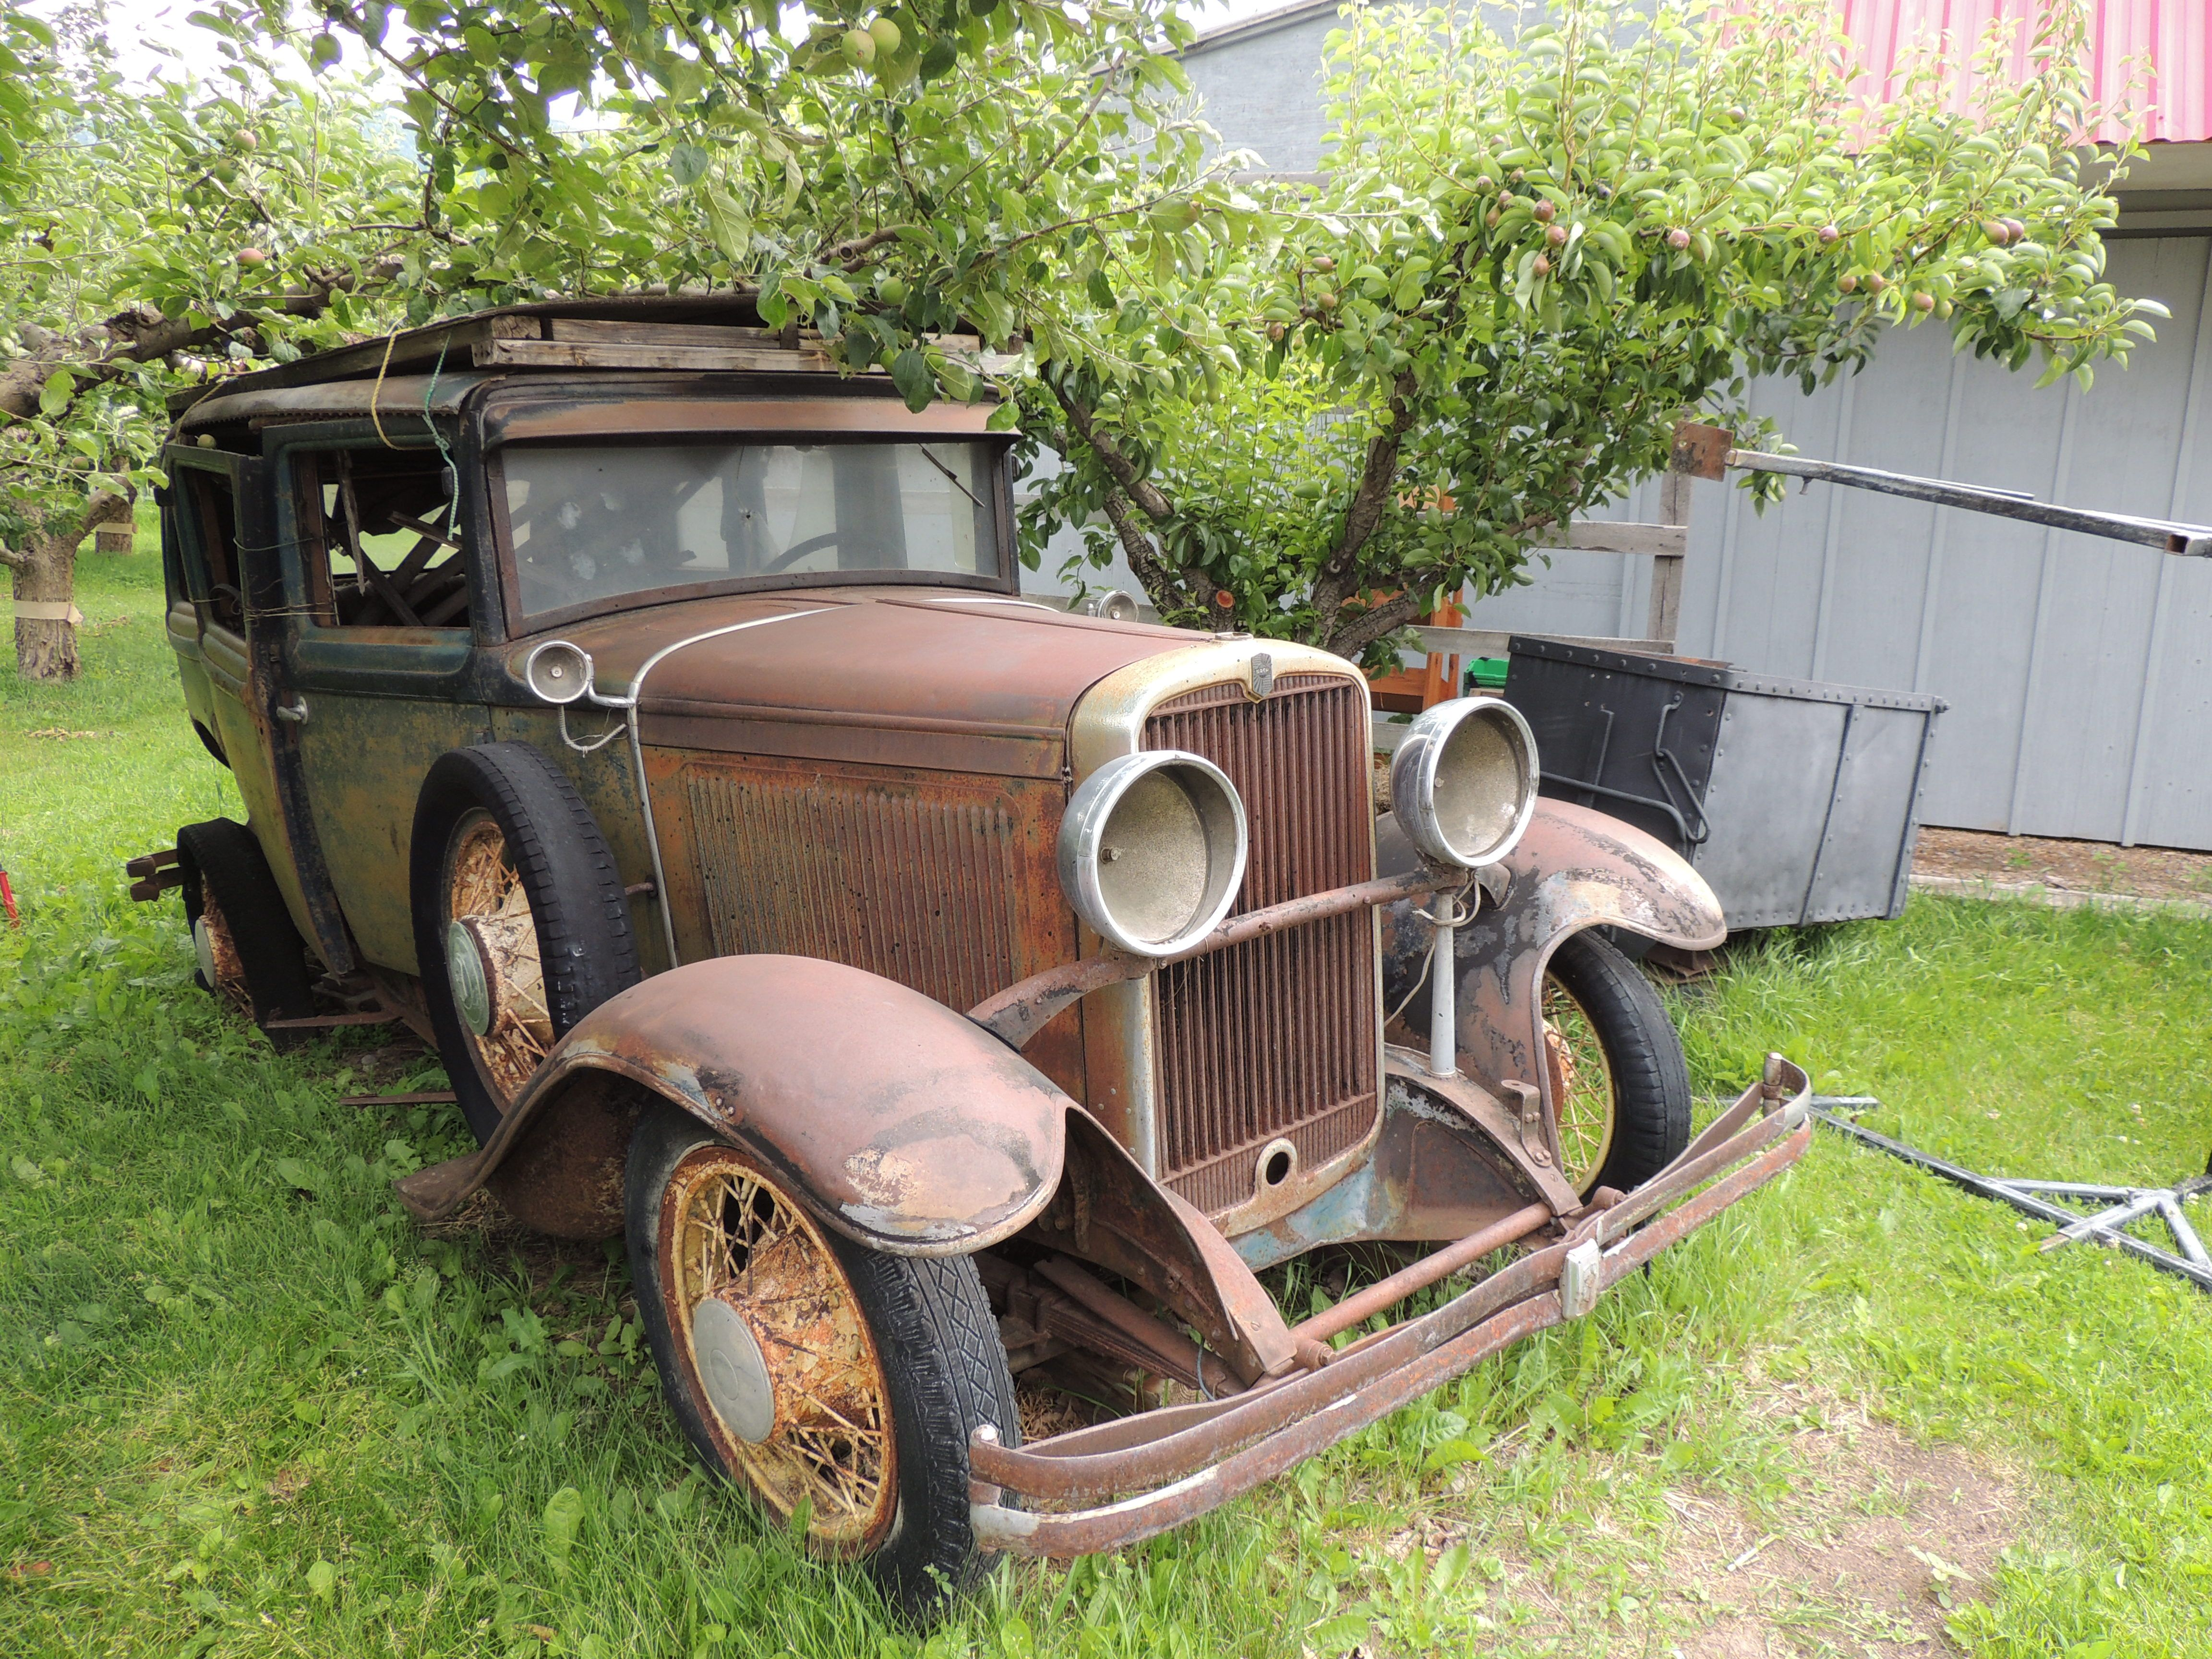 Pin by Clare Grochocki on Old things | Antique cars, Old